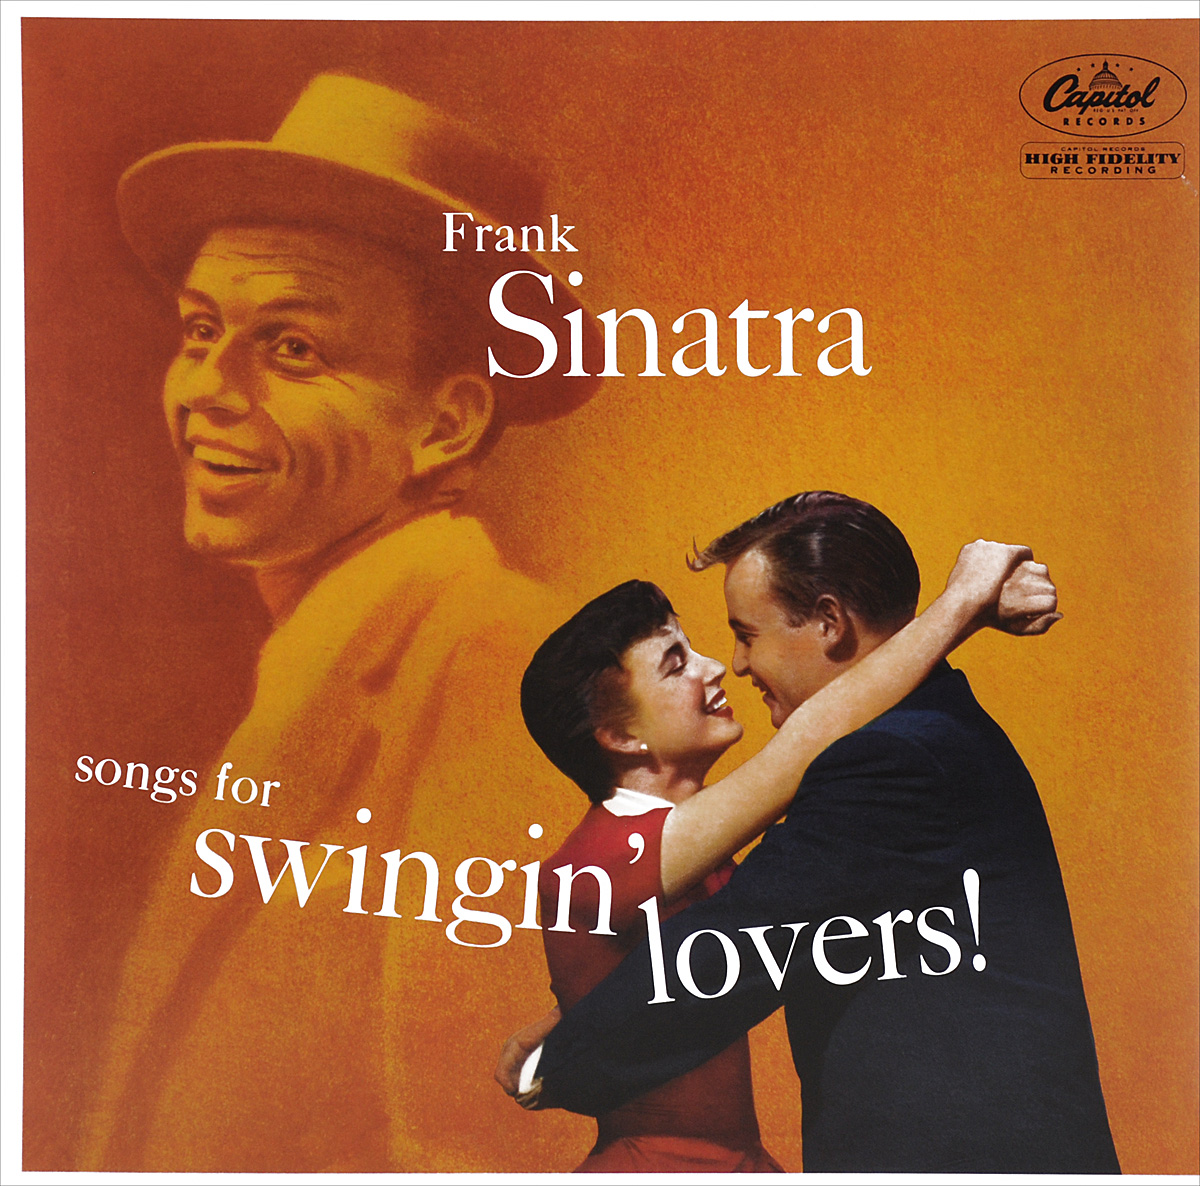 Фрэнк Синатра Frank Sinatra. Songs For Swingin' Lovers (LP) frank sinatra frank sinatra great songs from great britain 180 gr